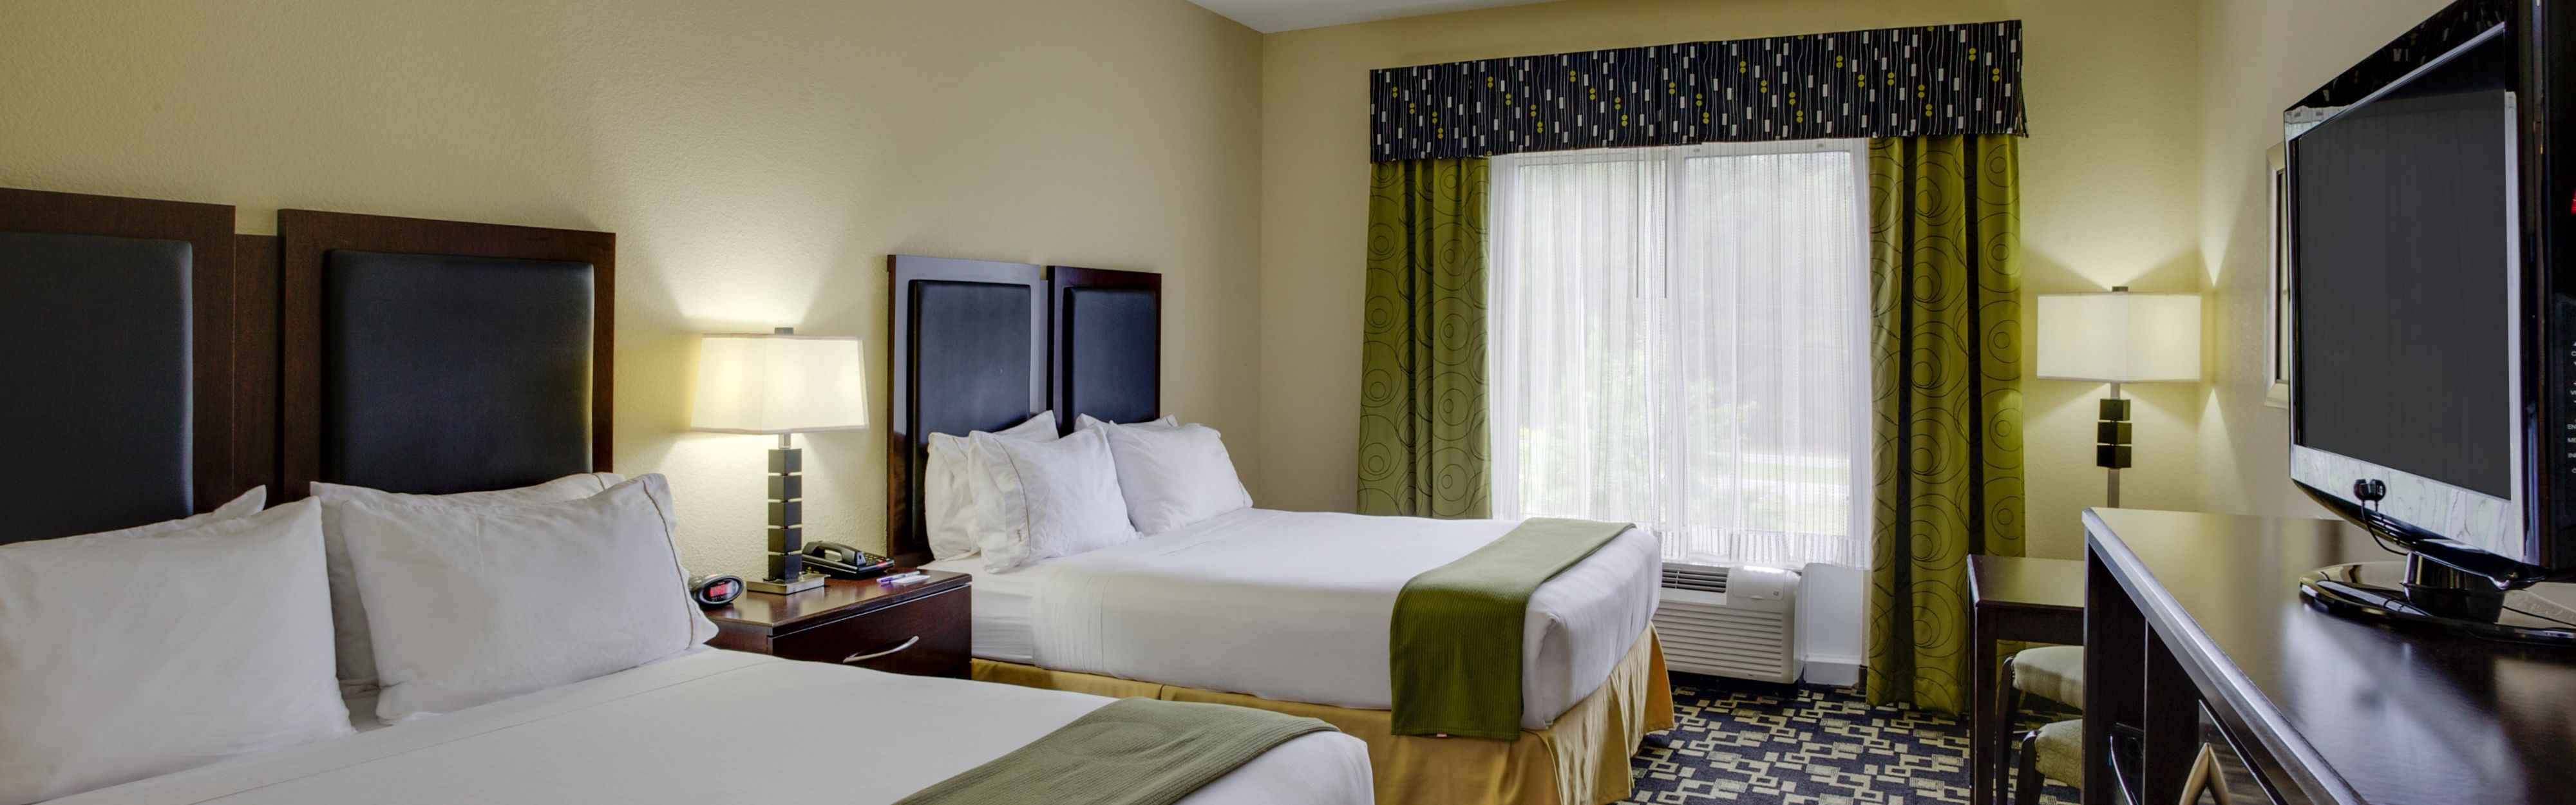 Holiday Inn Express & Suites Raleigh SW NC State image 1